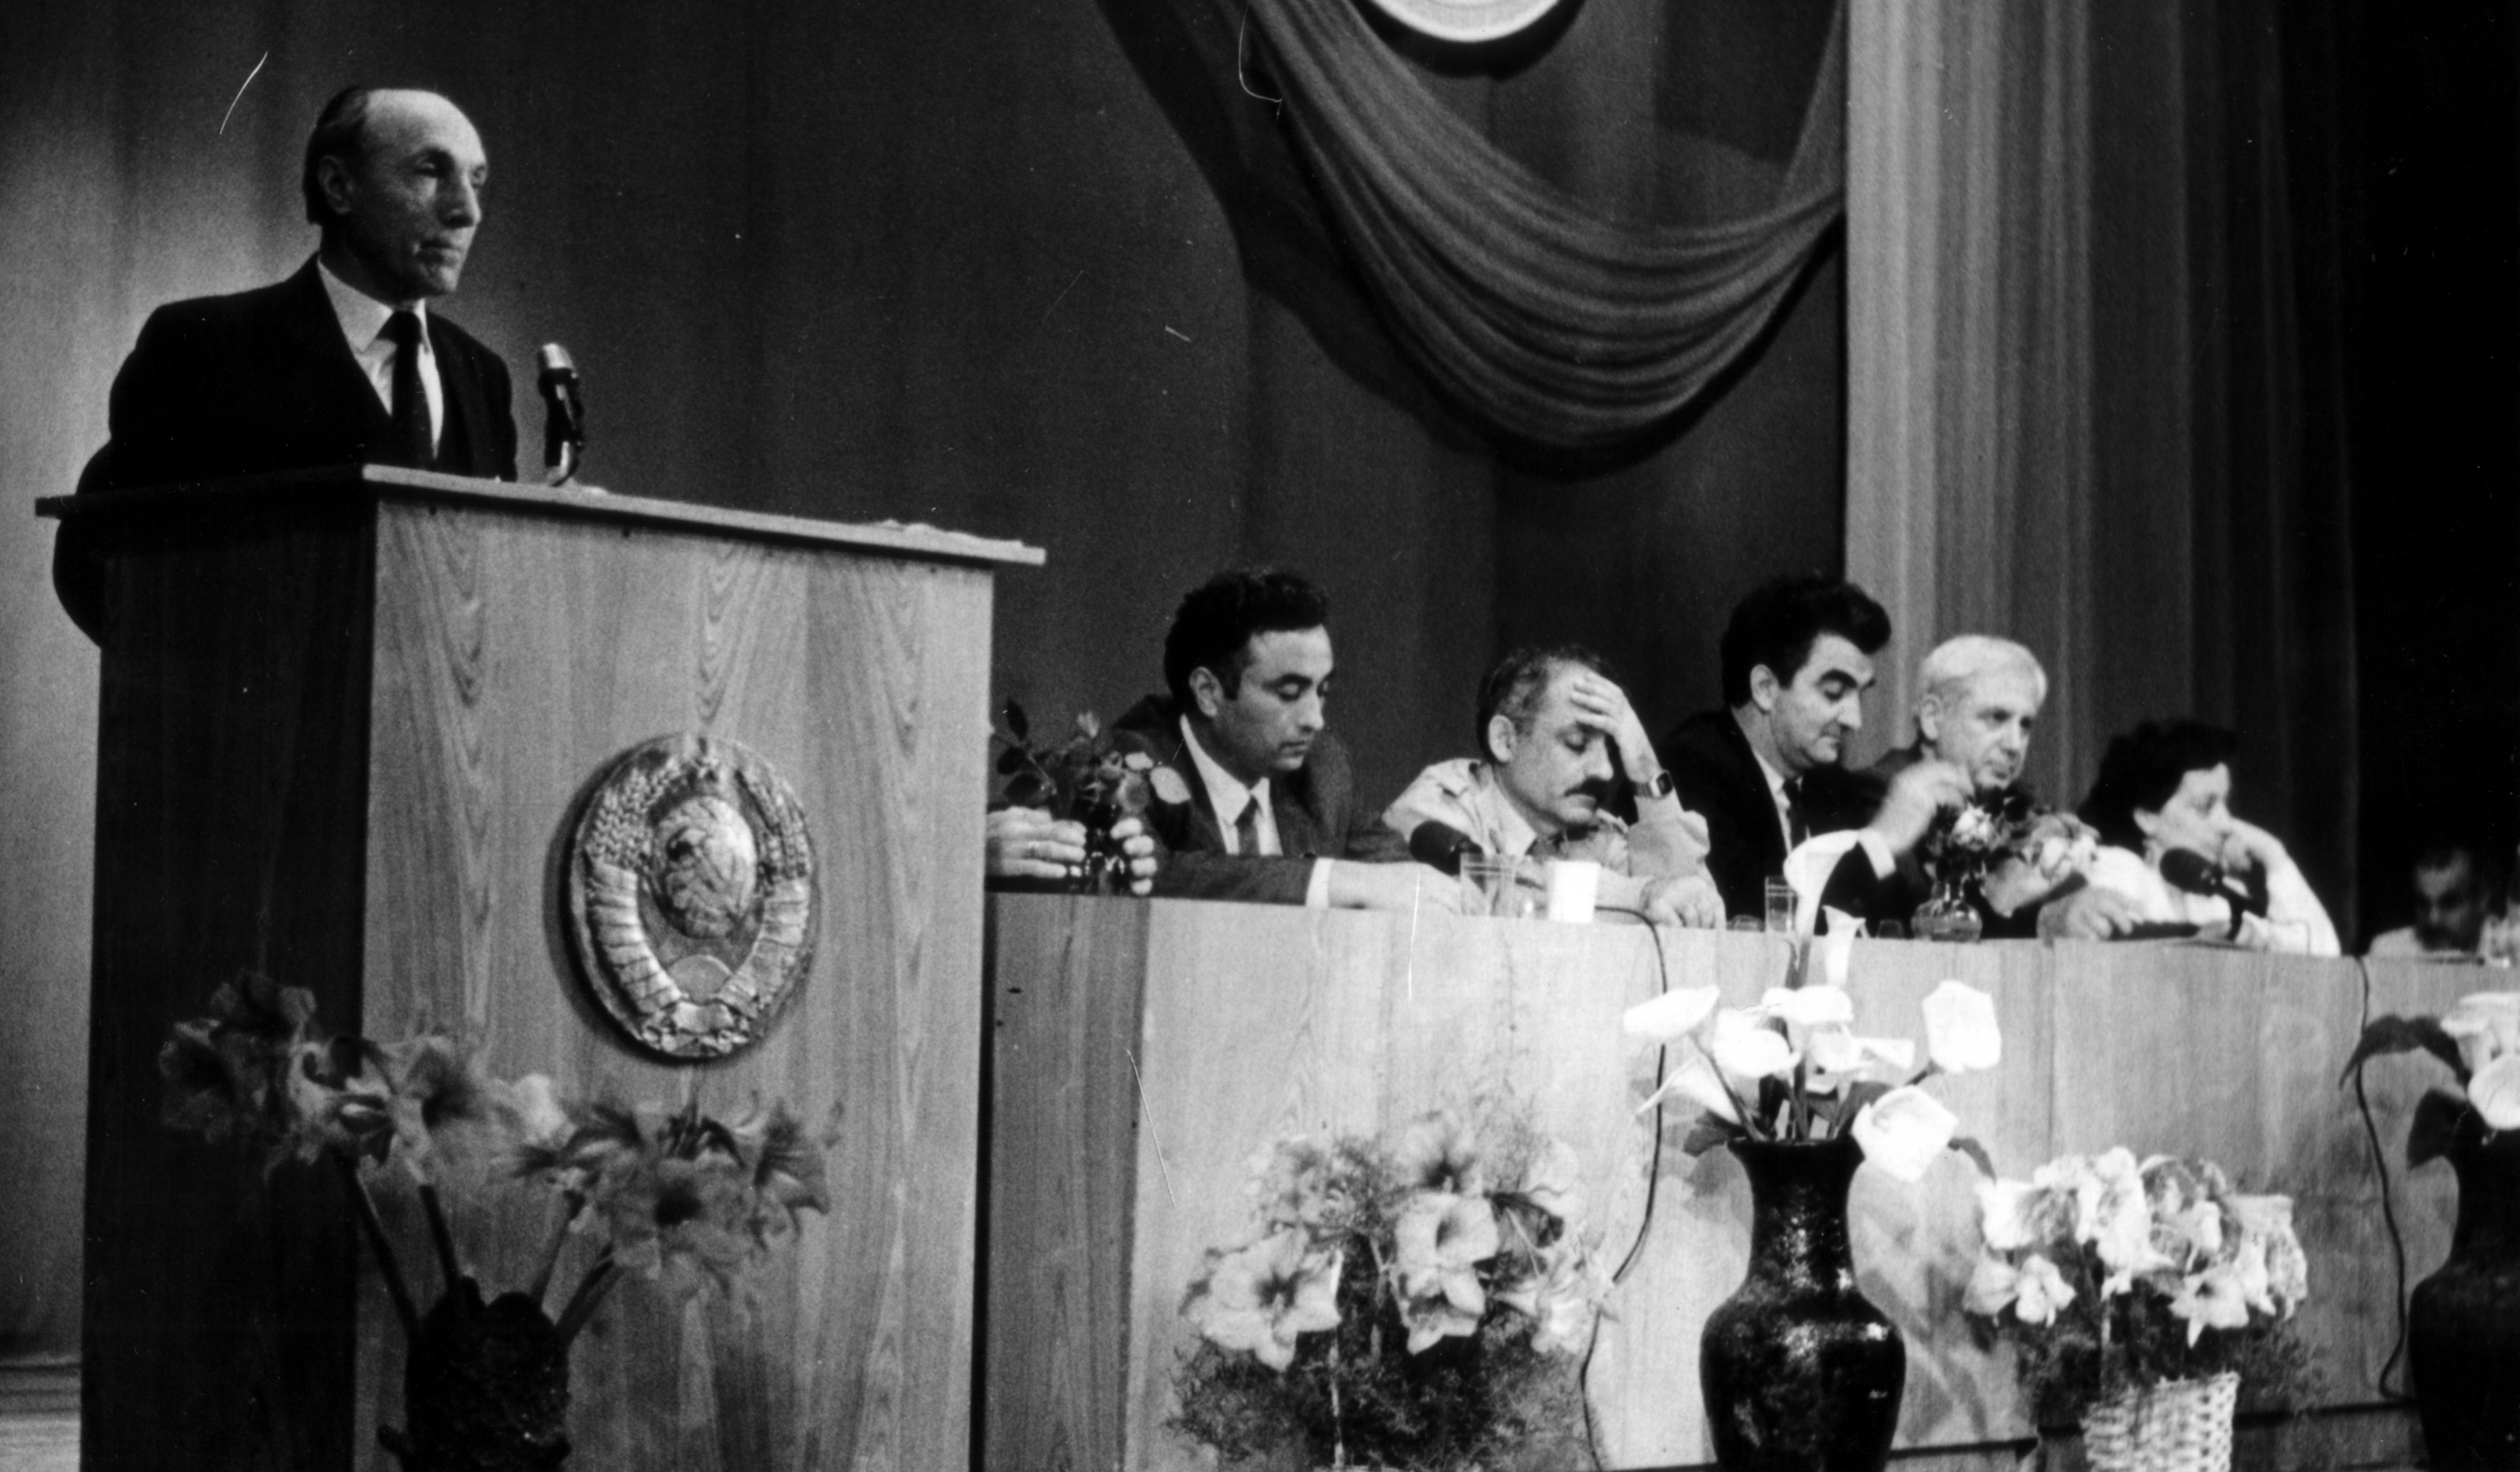 The first constituent congress of the USSR Greeks in Gelendzhik, 1991. S. Kosmeridi is a speaker